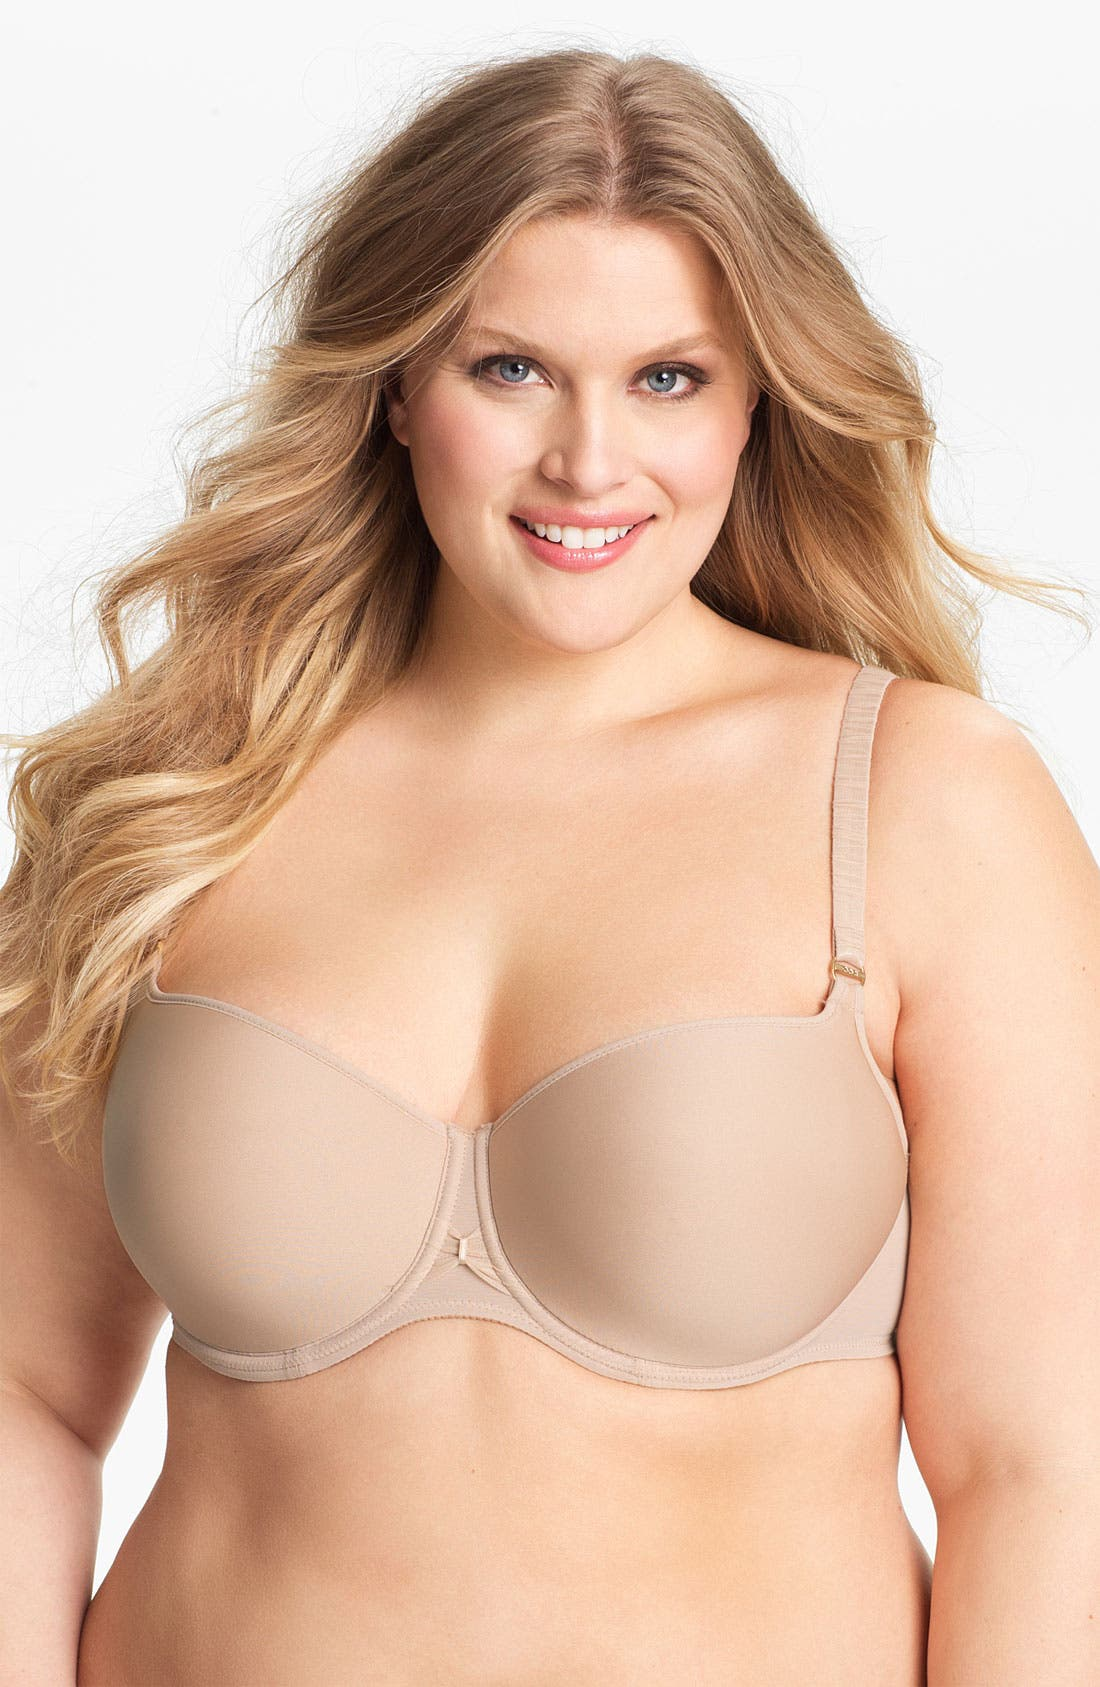 Main Image - Chantelle Intimates 'So Sublime' Underwire Demi Bra